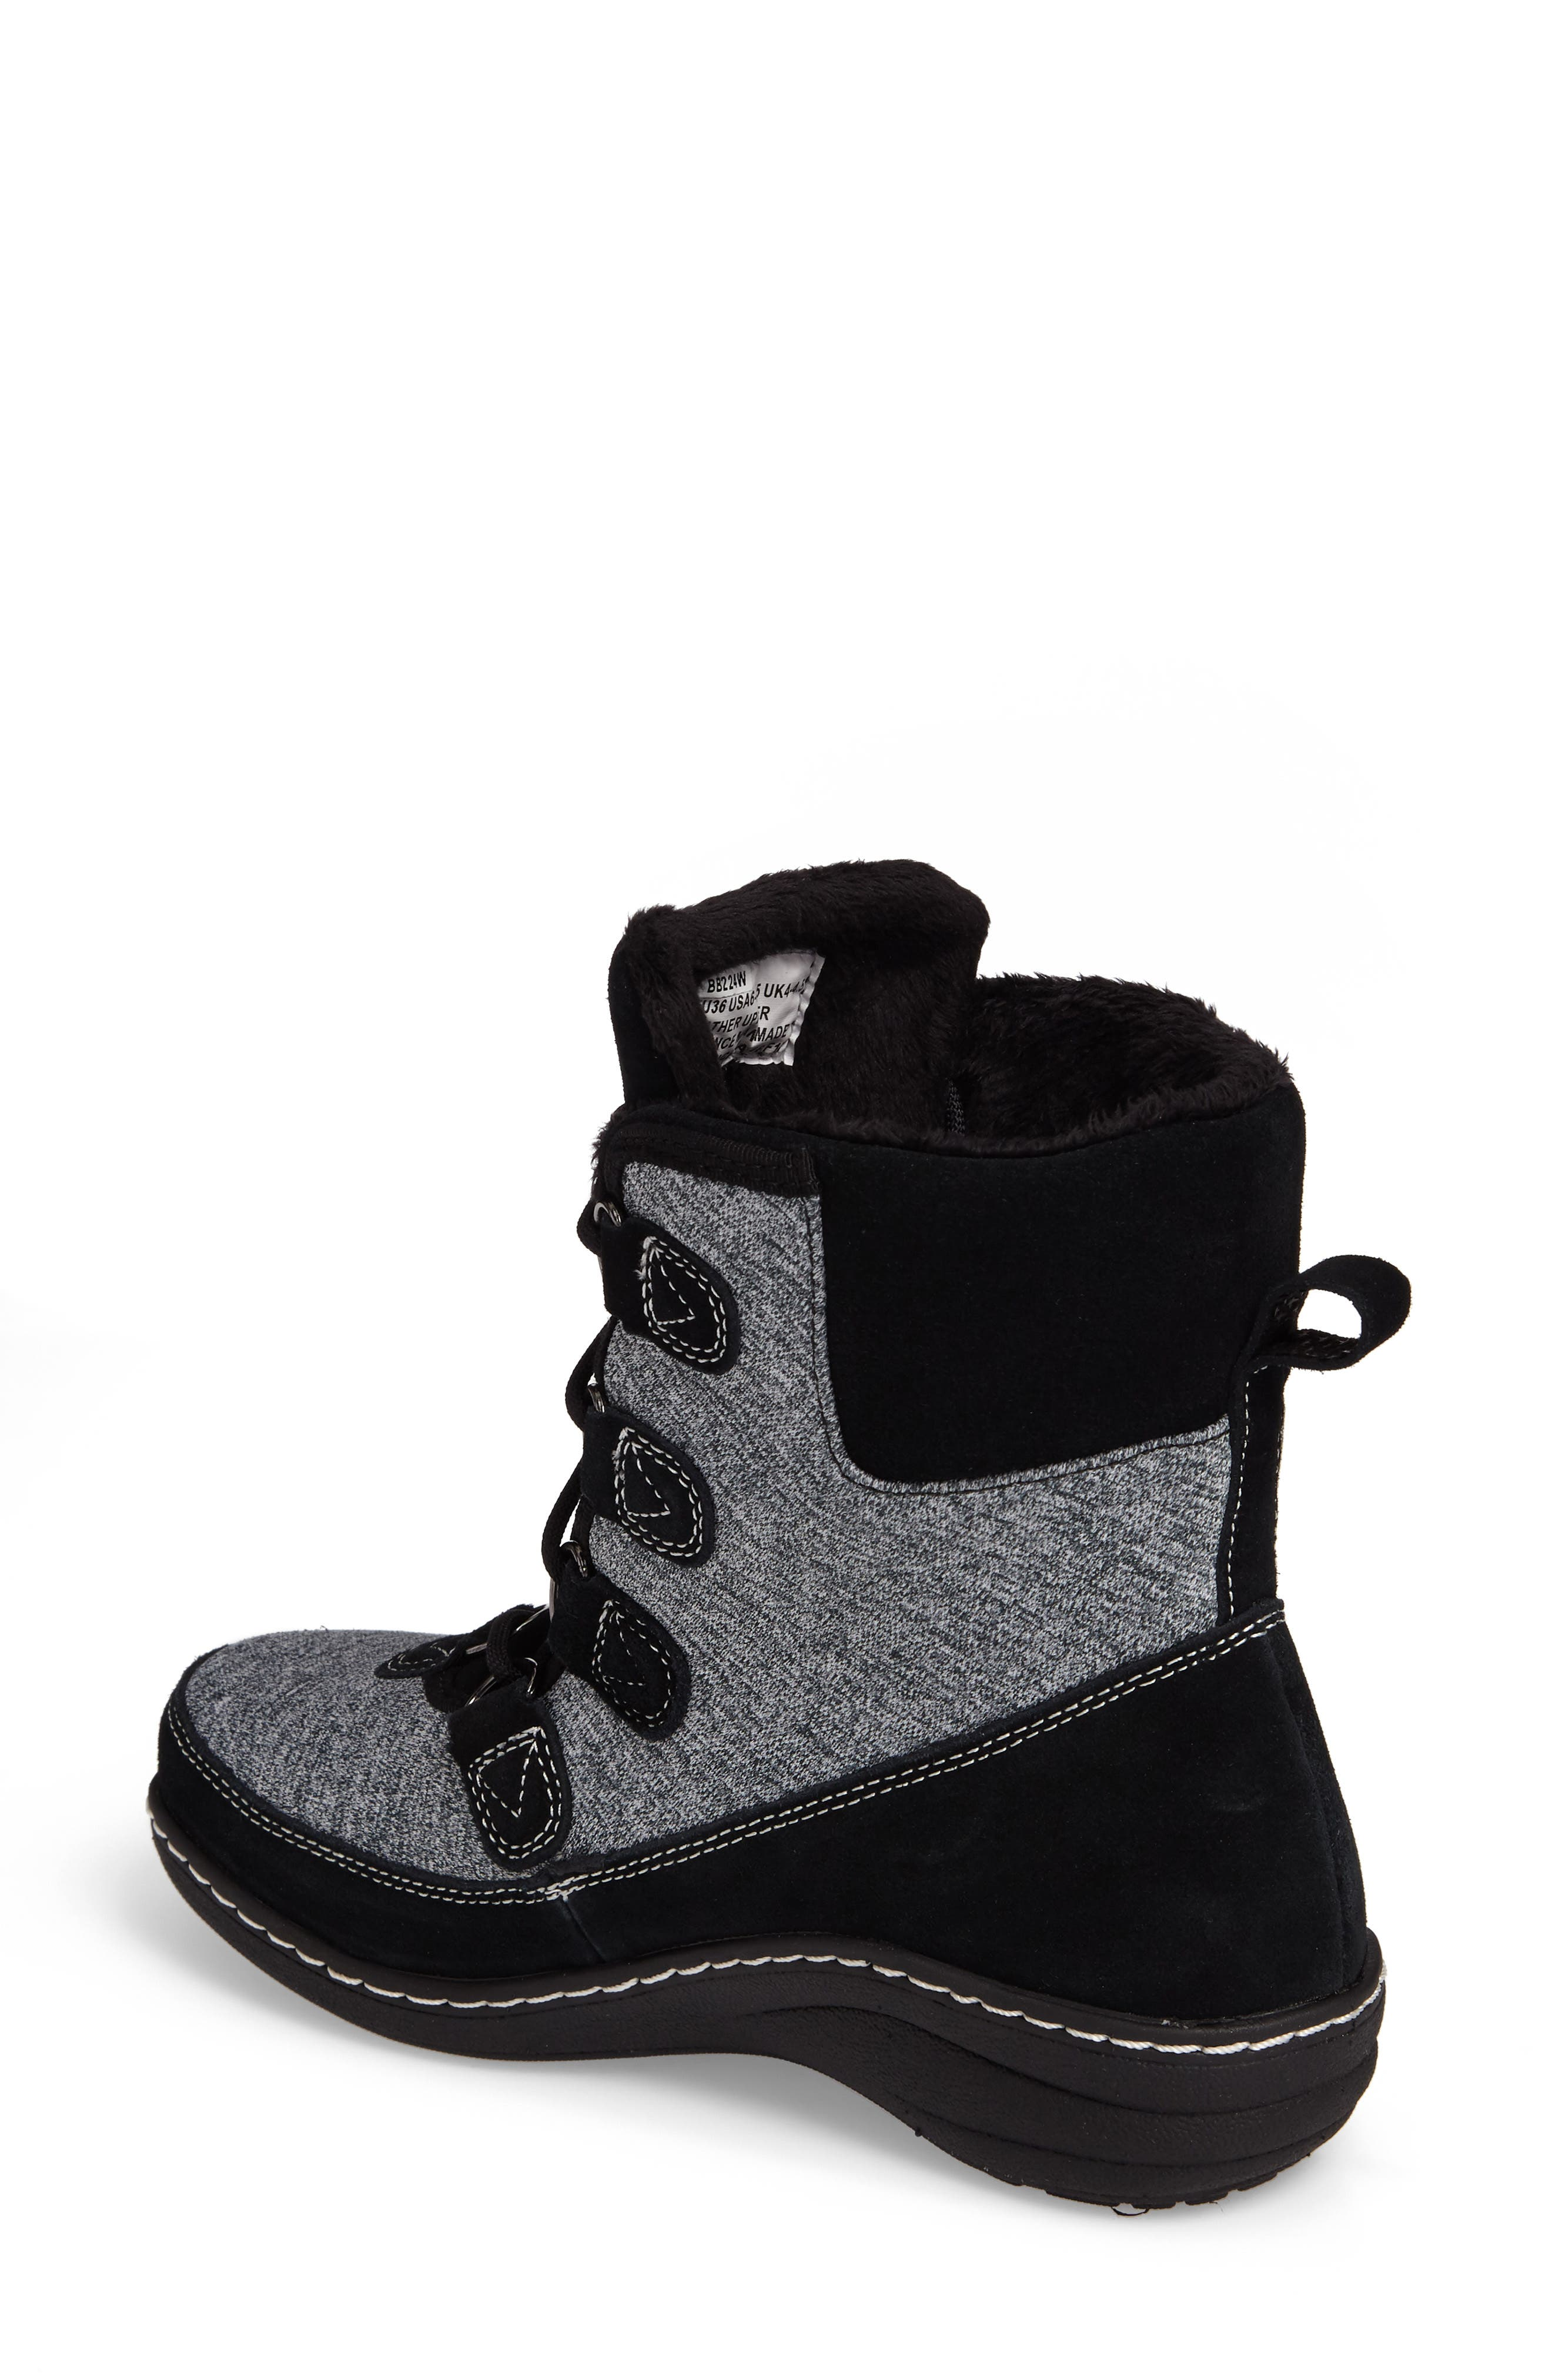 Berries Water Resistant Boot,                             Alternate thumbnail 2, color,                             MULTIBERRY SUEDE